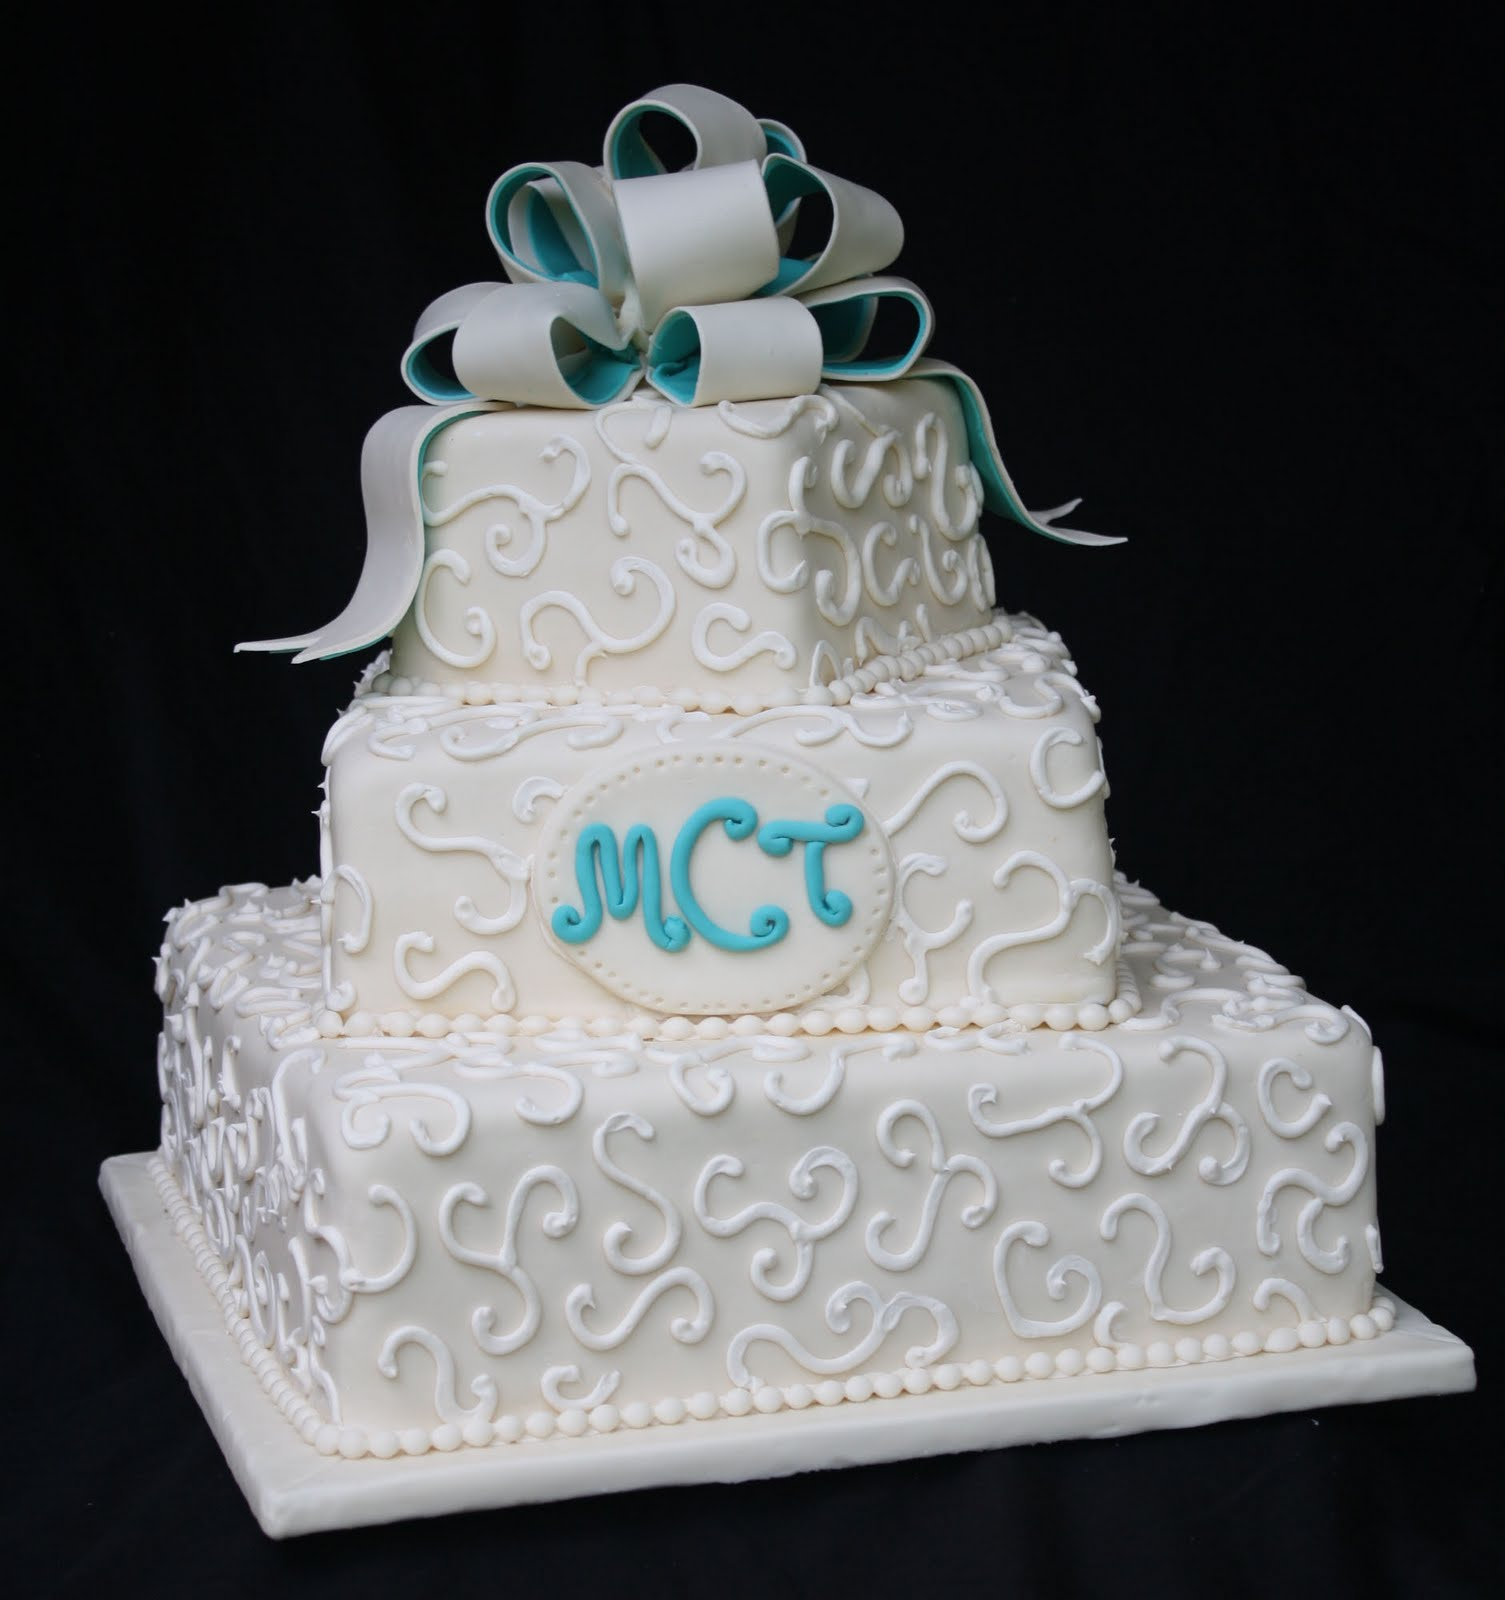 Magnificent Rose Bakes An Ivory and Teal Wedding Cake 1505 x 1600 · 142 kB · jpeg